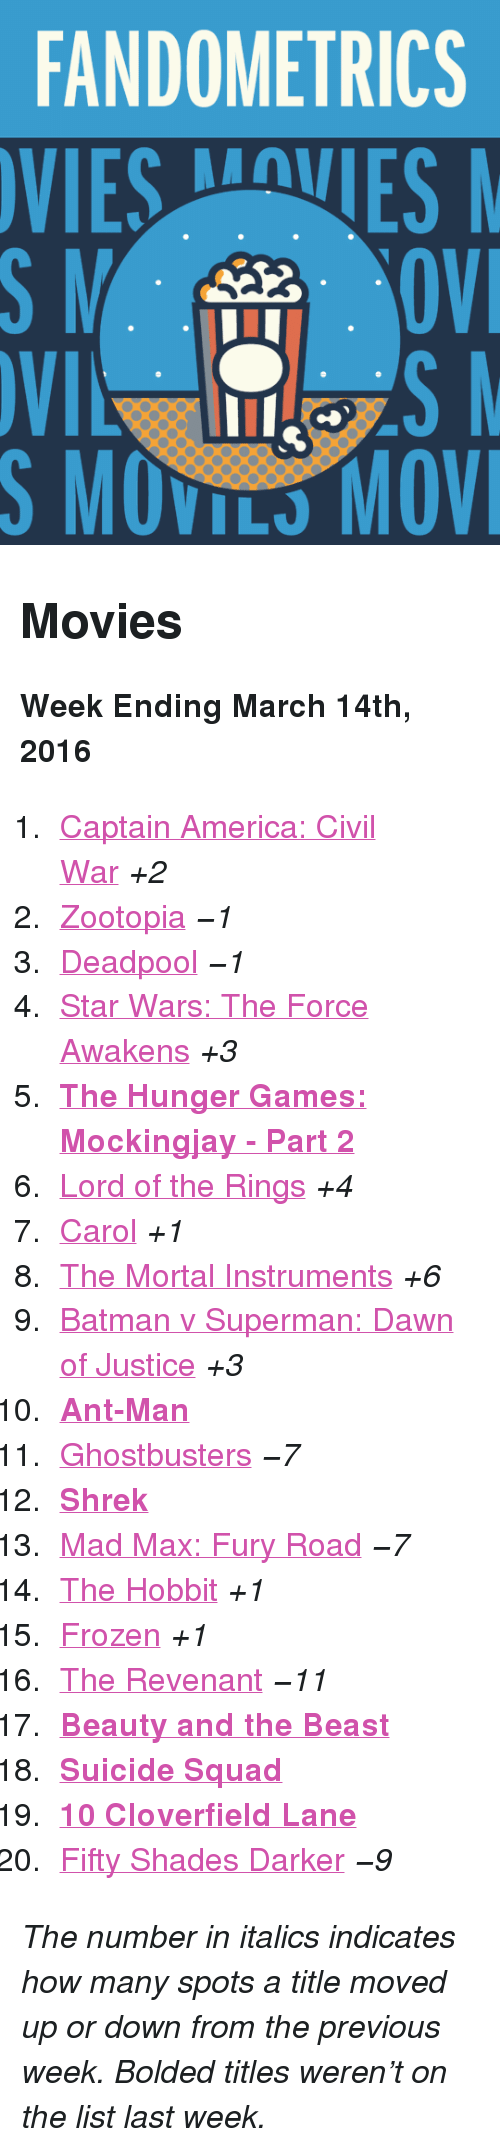 """March 14Th: FANDOMETRICS  VIESVES  S MOVILS MOV <h2>Movies</h2><p><b>Week Ending March 14th, 2016</b></p><ol><li><a href=""""http://www.tumblr.com/search/captain%20america%20civil%20war"""">Captain America: Civil War</a><i>+2</i></li>  <li><a href=""""http://www.tumblr.com/search/zootopia"""">Zootopia</a><i>−1</i></li>  <li><a href=""""http://www.tumblr.com/search/deadpool"""">Deadpool</a><i>−1</i></li>  <li><a href=""""http://www.tumblr.com/search/the%20force%20awakens"""">Star Wars: The Force Awakens</a><i>+3</i></li>  <li><a href=""""http://www.tumblr.com/search/mockingjay""""><b>The Hunger Games: Mockingjay - Part 2</b></a></li>  <li><a href=""""http://www.tumblr.com/search/lotr"""">Lord of the Rings</a><i>+4</i></li>  <li><a href=""""http://www.tumblr.com/search/carol"""">Carol</a><i>+1</i></li>  <li><a href=""""http://www.tumblr.com/search/the%20mortal%20instruments"""">The Mortal Instruments</a><i>+6</i></li>  <li><a href=""""http://www.tumblr.com/search/batman%20v%20superman"""">Batman v Superman: Dawn of Justice</a><i>+3</i></li>  <li><a href=""""http://www.tumblr.com/search/ant%20man""""><b>Ant-Man</b></a></li>  <li><a href=""""http://www.tumblr.com/search/ghostbusters"""">Ghostbusters</a><i>−7</i></li>  <li><a href=""""http://www.tumblr.com/search/shrek""""><b>Shrek</b></a></li>  <li><a href=""""http://www.tumblr.com/search/mad%20max"""">Mad Max: Fury Road</a><i>−7</i></li>  <li><a href=""""http://www.tumblr.com/search/the%20hobbit"""">The Hobbit</a><i>+1</i></li>  <li><a href=""""http://www.tumblr.com/search/frozen"""">Frozen</a><i>+1</i></li>  <li><a href=""""http://www.tumblr.com/search/the%20revenant"""">The Revenant</a><i>−11</i></li>  <li><a href=""""http://www.tumblr.com/search/beauty%20and%20the%20beast""""><b>Beauty and the Beast</b></a></li>  <li><a href=""""http://www.tumblr.com/search/suicide%20squad""""><b>Suicide Squad</b></a></li>  <li><a href=""""http://www.tumblr.com/search/10%20cloverfield%20lane""""><b>10 Cloverfield Lane</b></a></li>  <li><a href=""""http://www.tumblr.com/search/fifty%20shades%20darker"""">Fifty Shades Darker</a><i>−9</i></li></ol><p><i"""